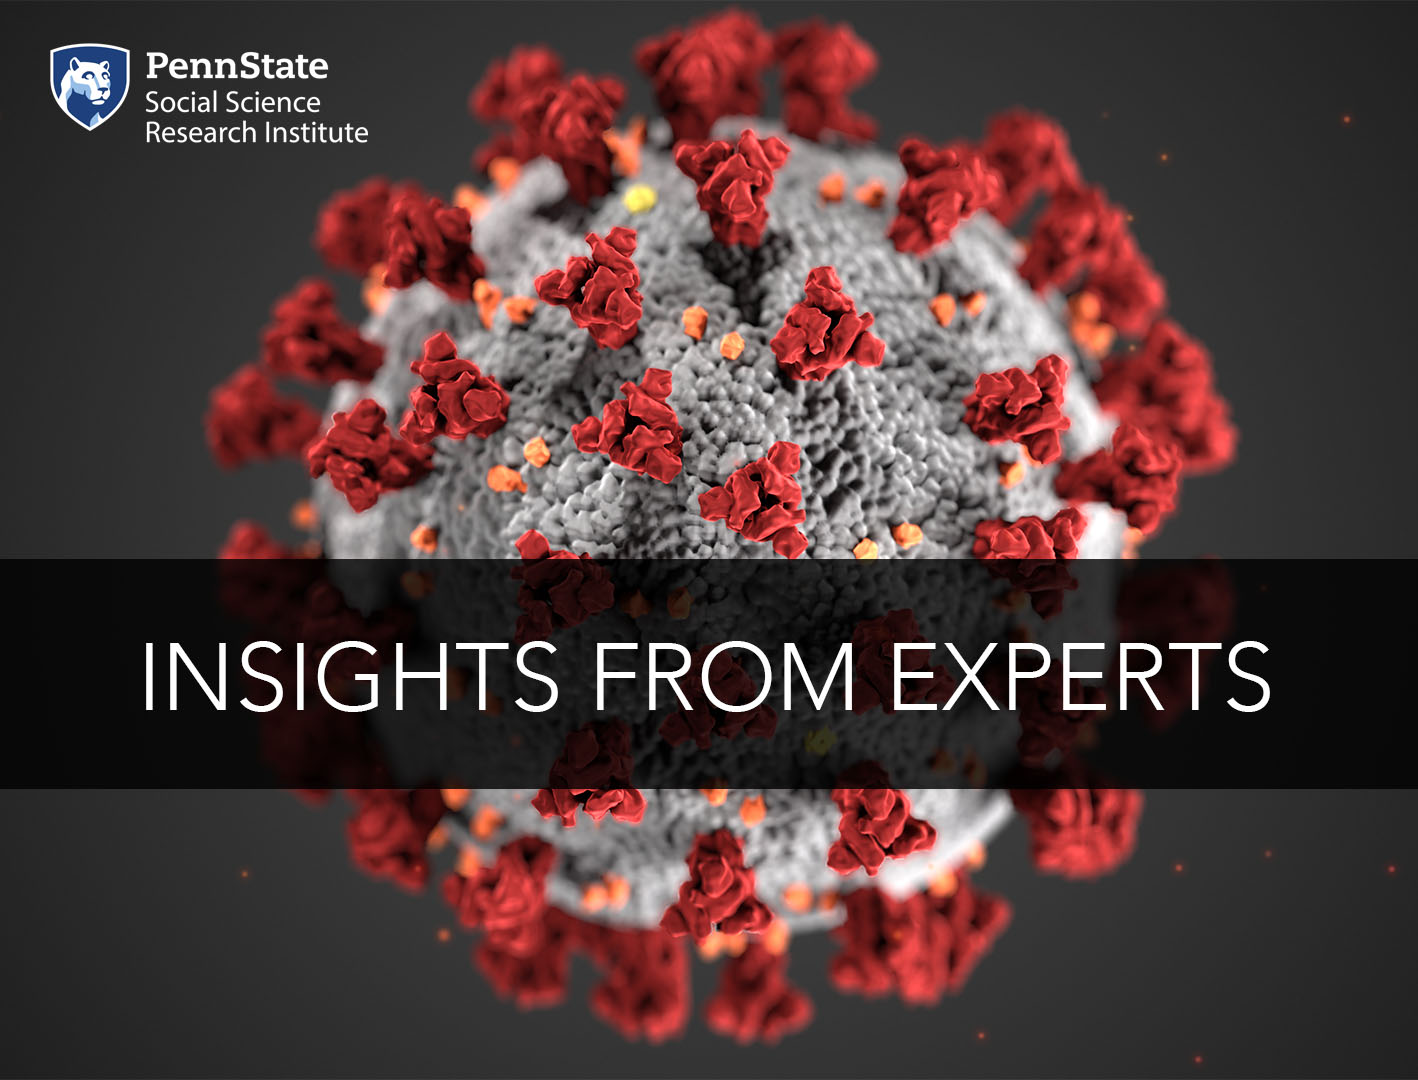 Insights from Experts image